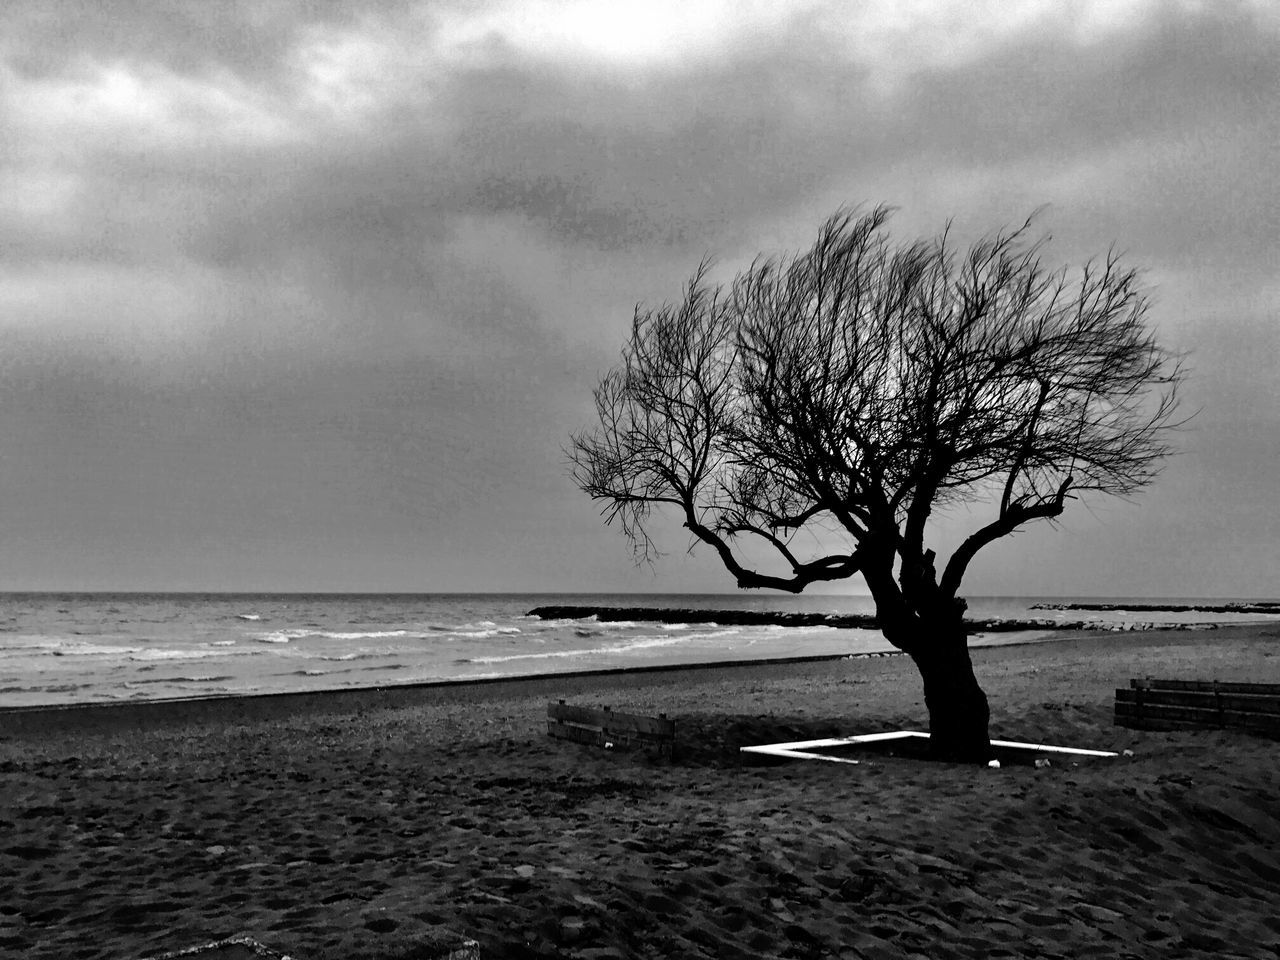 Tree Nature Sea Tranquility Bare Tree Horizon Over Water Lone Beauty In Nature Isolated Sky Branch Remote No People Beach Tranquil Scene Scenics Tree Trunk Landscape Outdoors Water